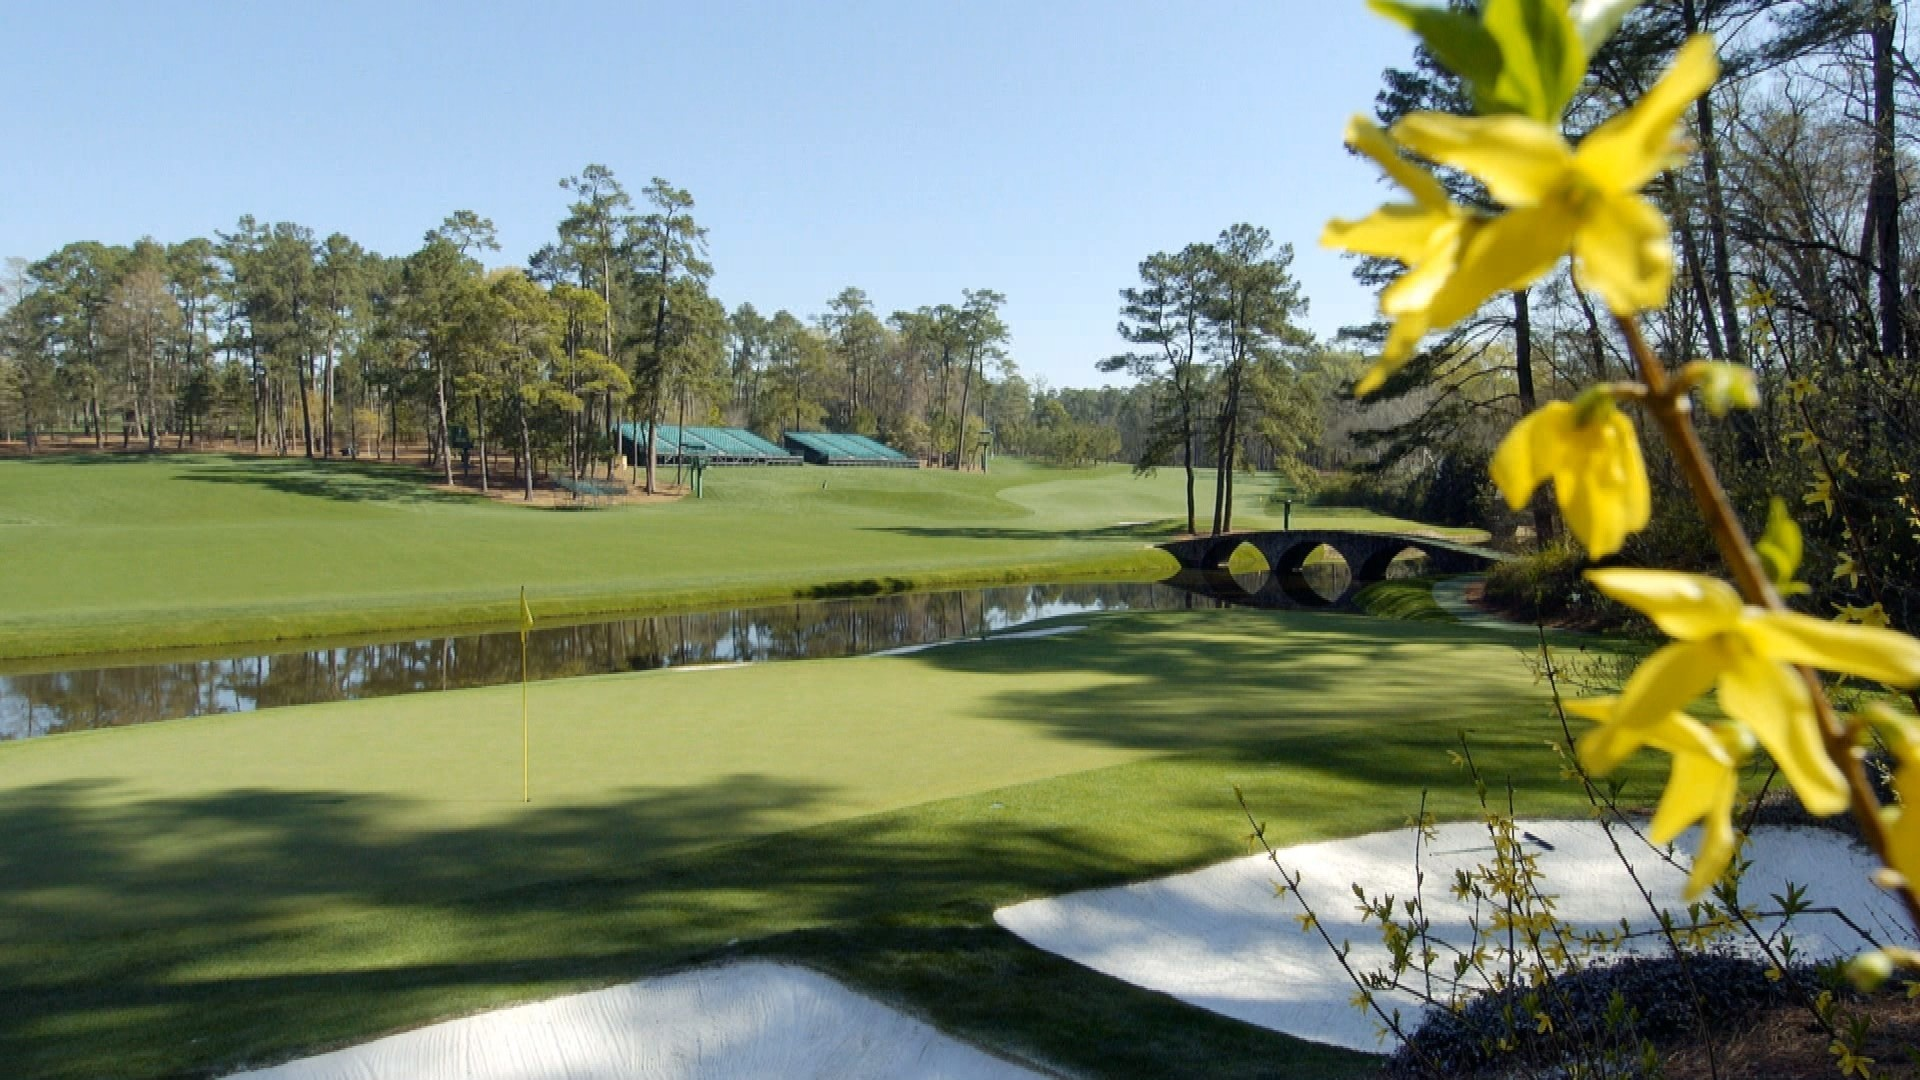 1920x1080 The Augusta National Golf Course Wallpapers HD Masters 2015 8 Download Wallpaper